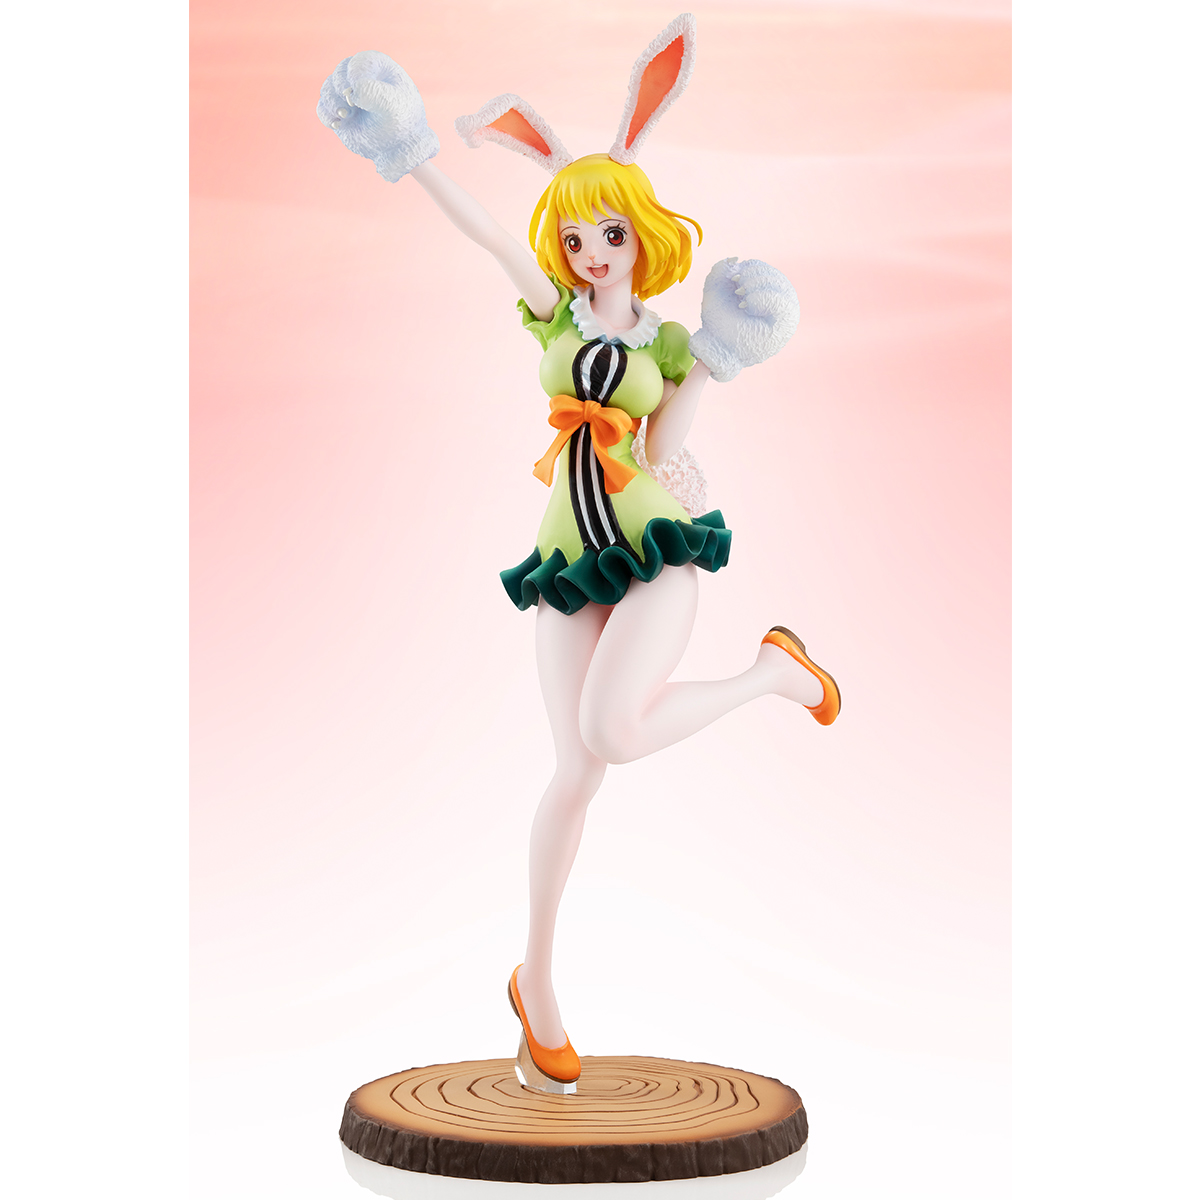 Carrot Portrait of Pirates Limited Edition One Piece Figure